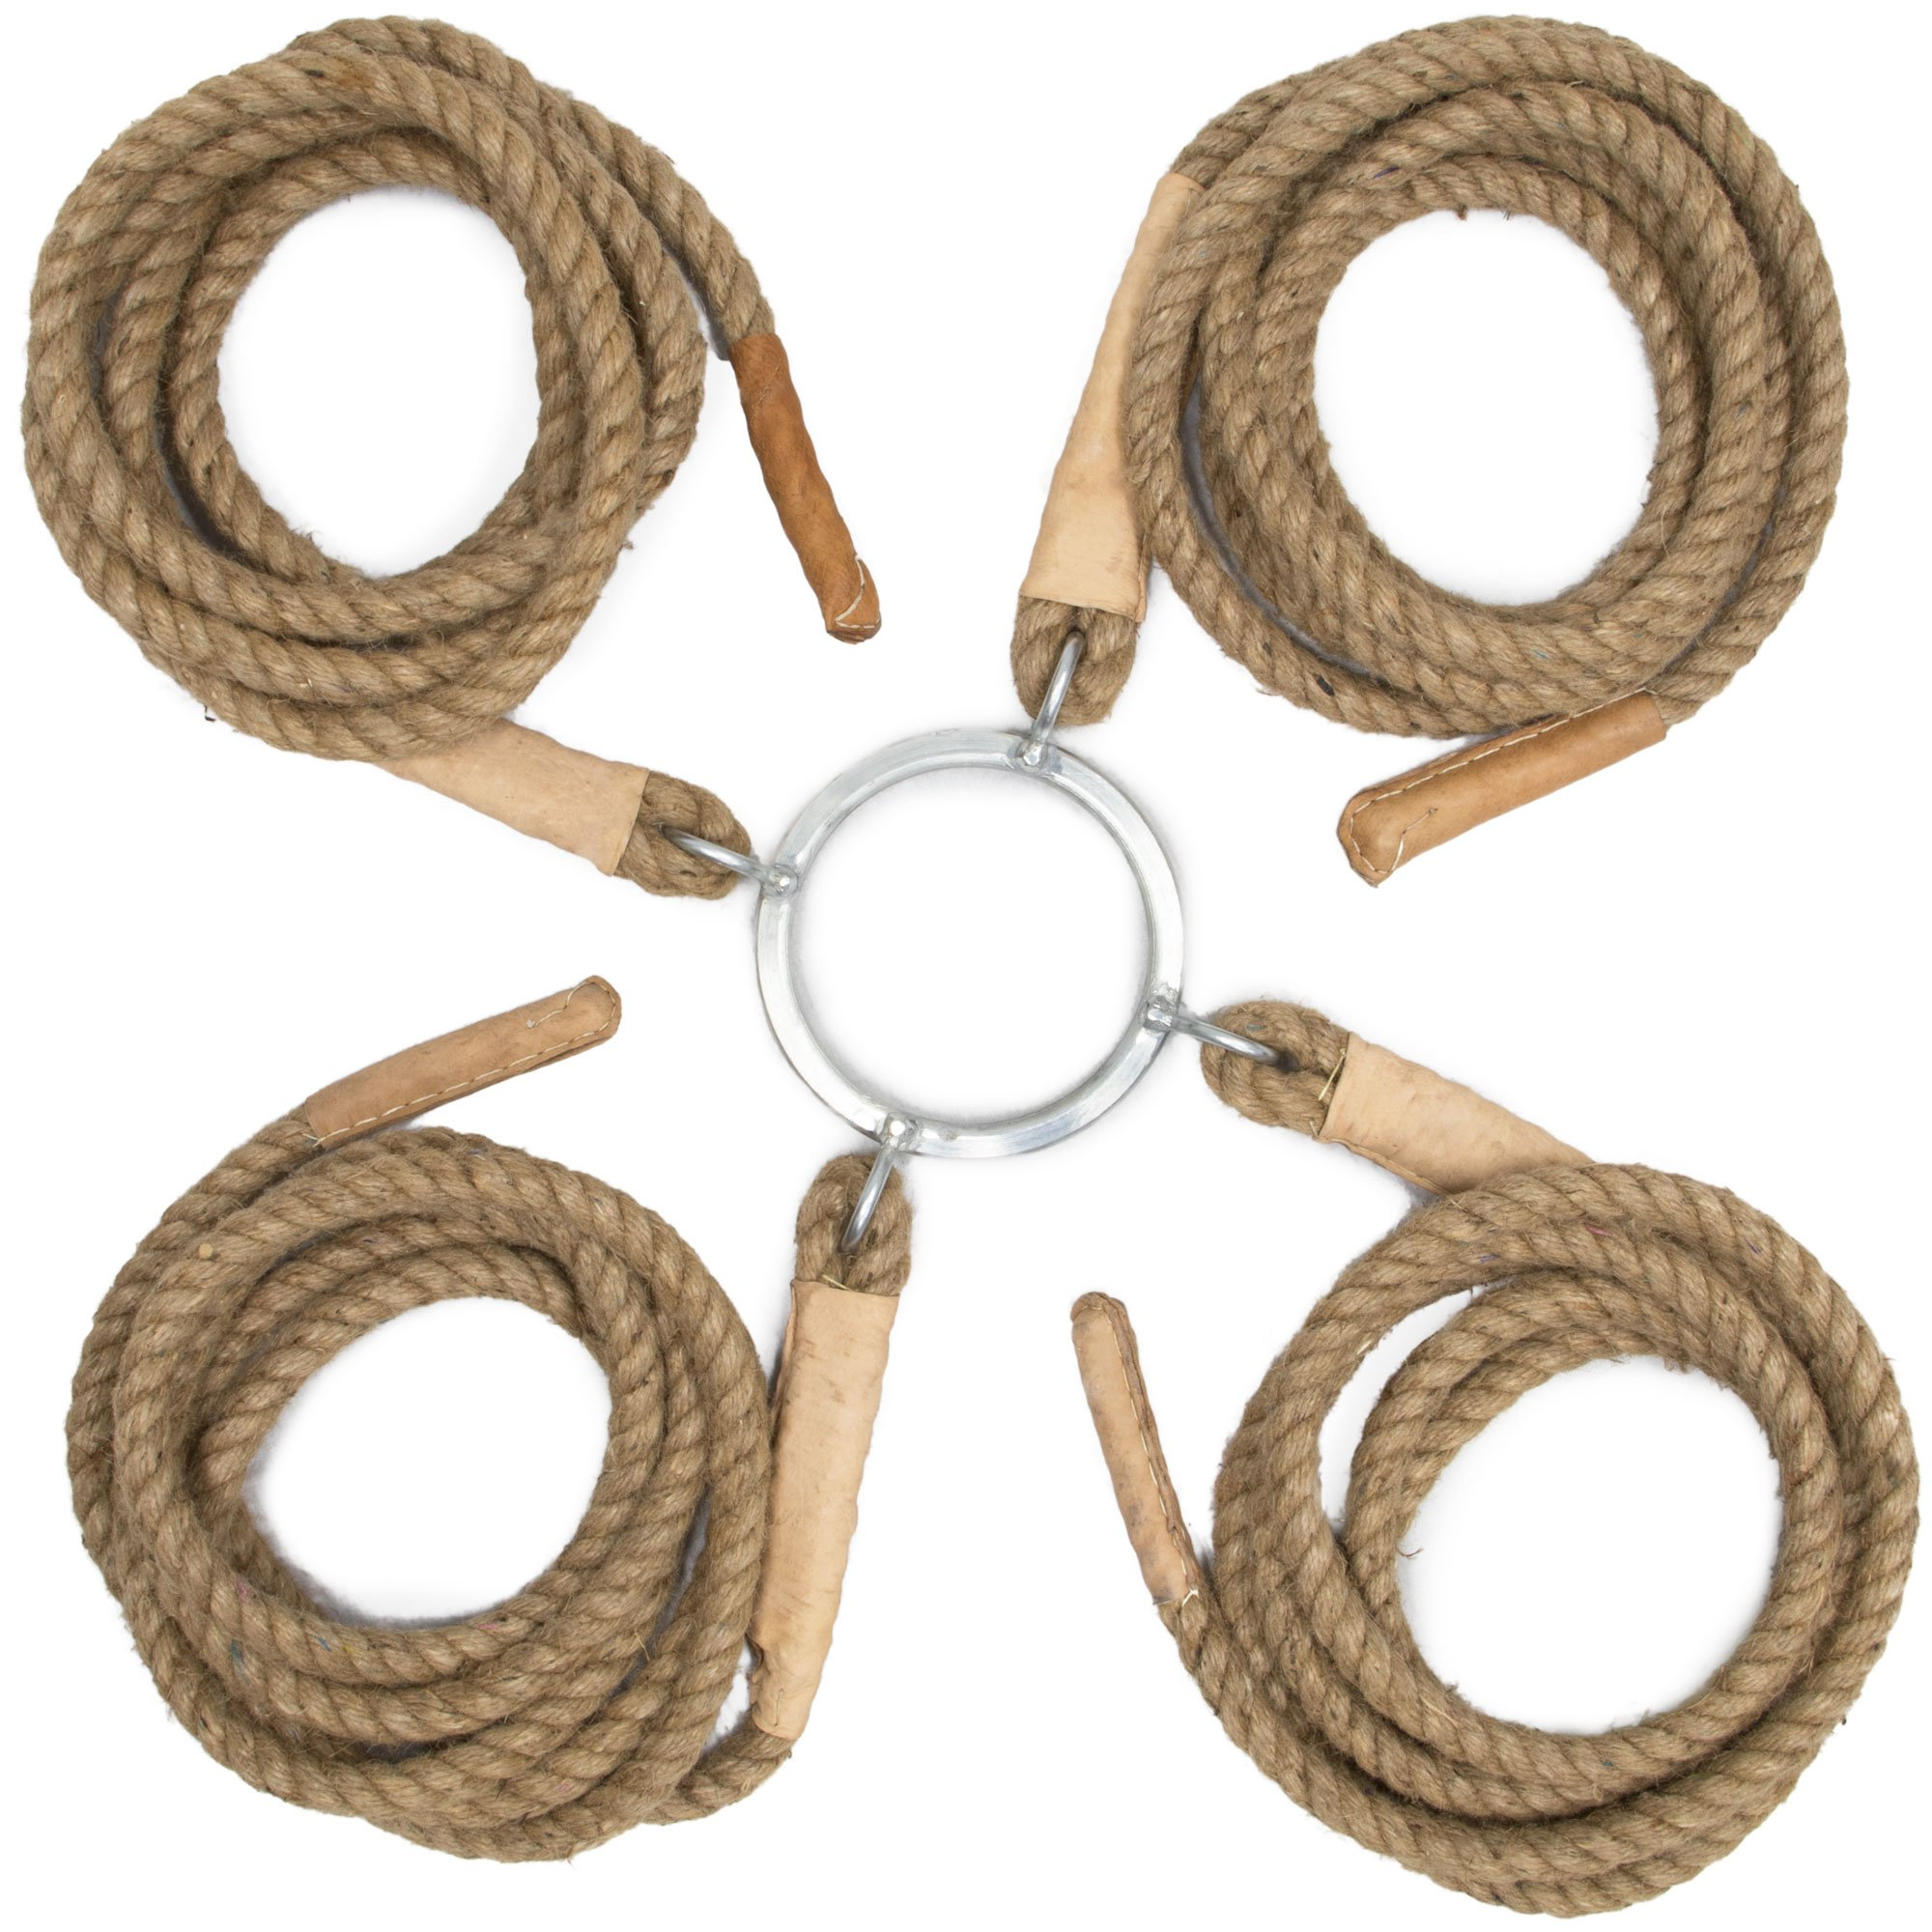 4-Way Tug of War Ropes: Four 5m Jute Twine Ropes with Steel Ring for 30 Players by Crown Sporting Goods